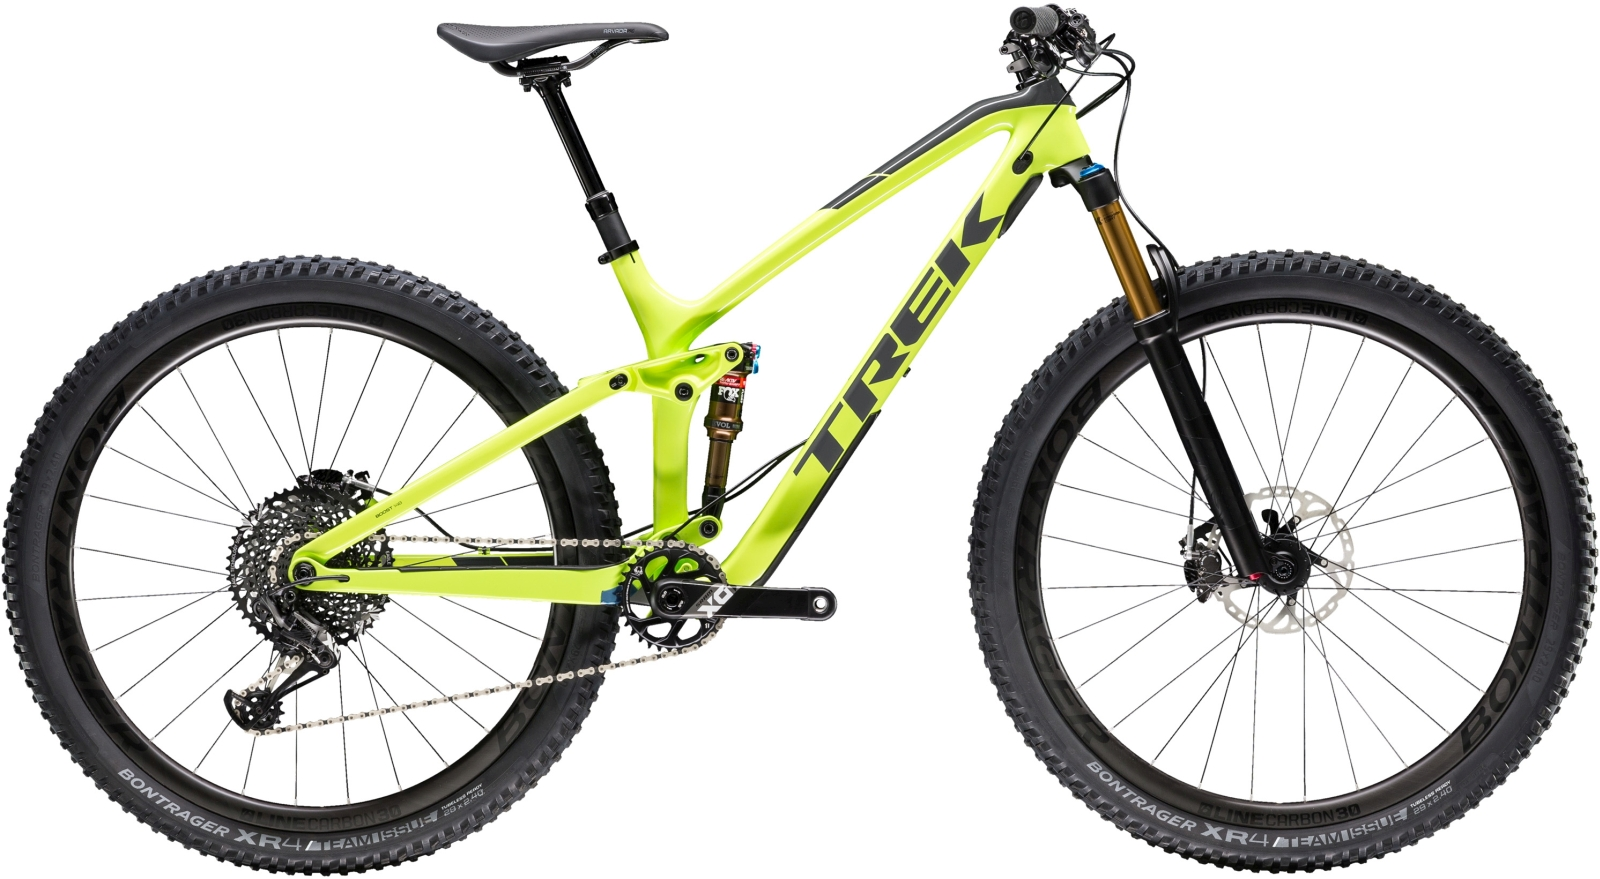 Trek Fuel EX 9.9 29 - Volt/Solid Charcoal 17.5